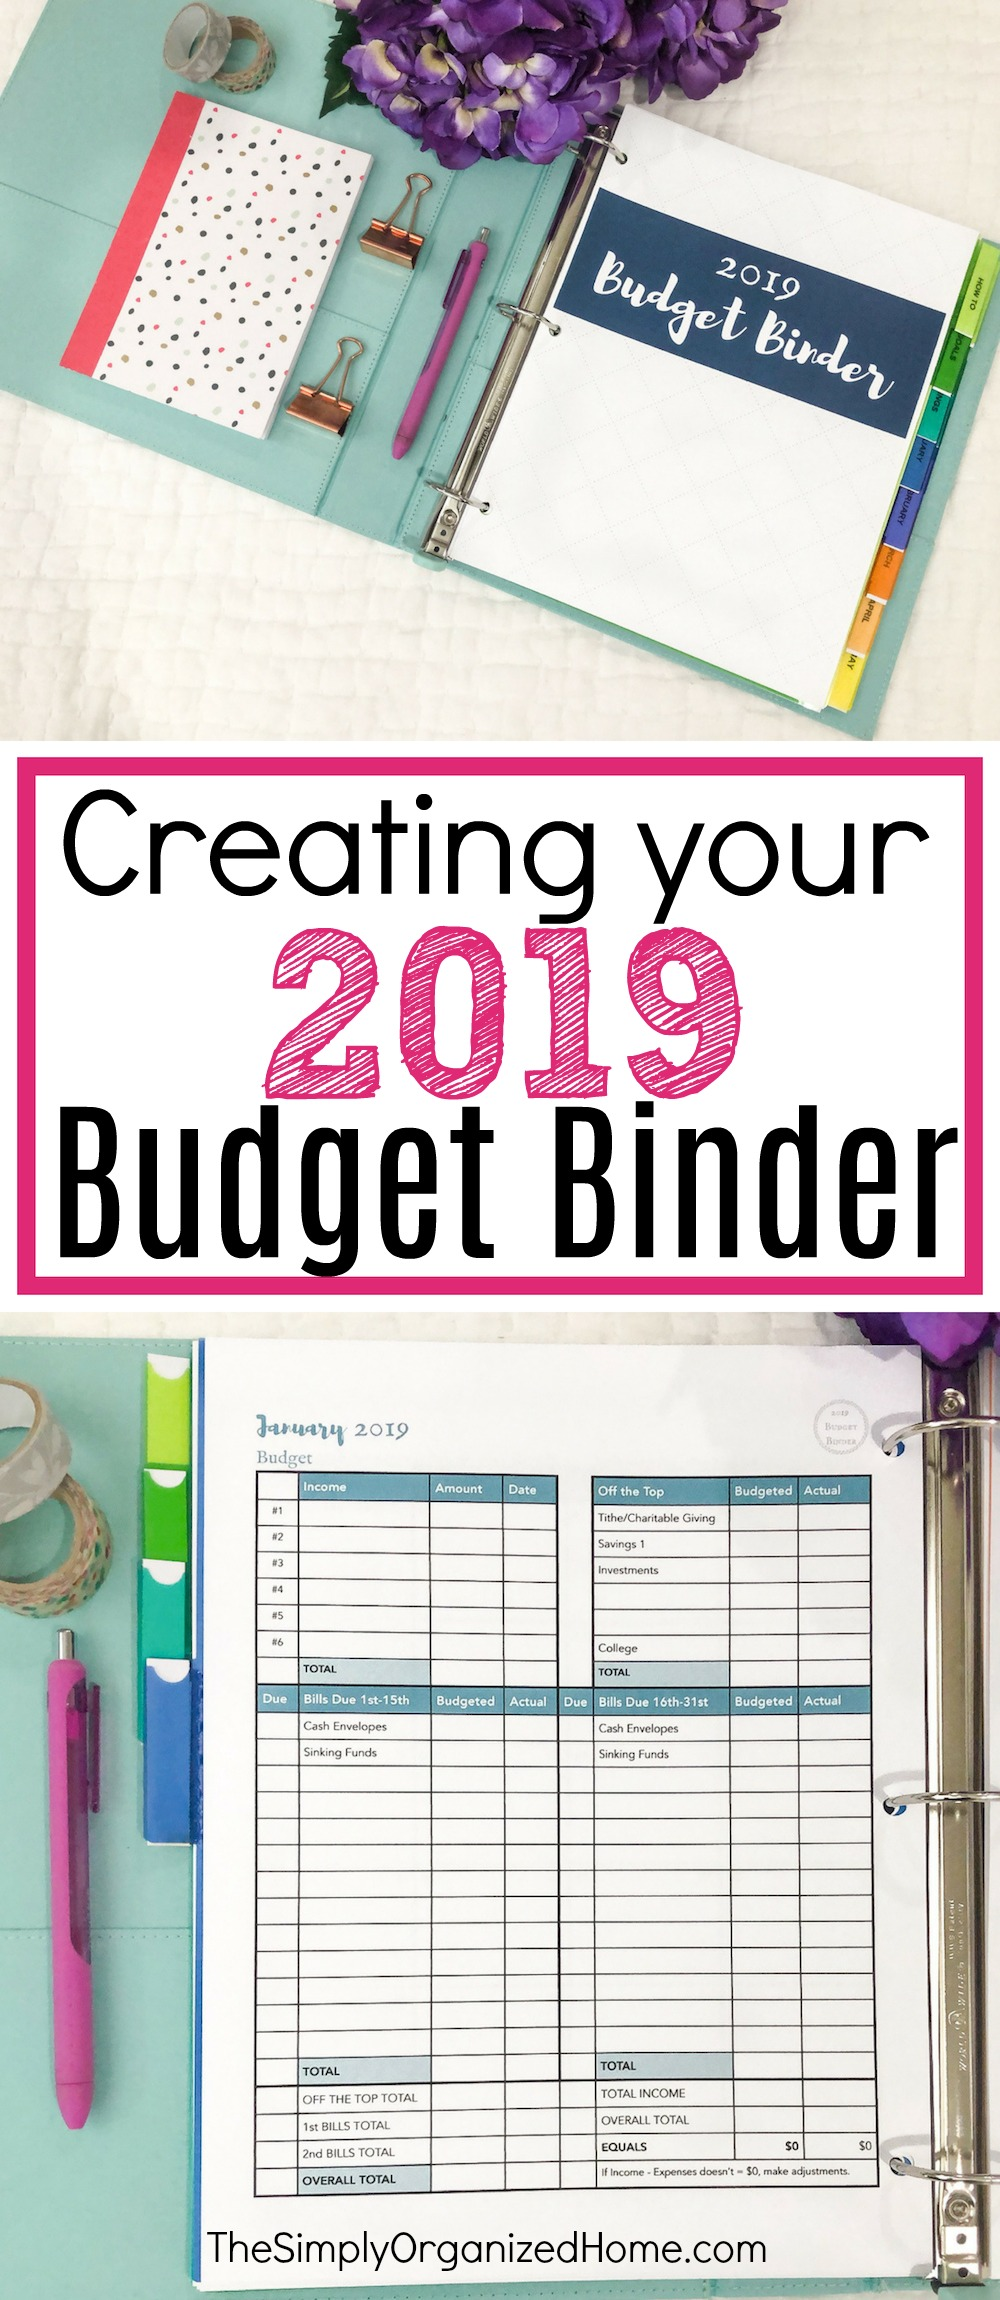 picture relating to Free Printable Budget Binder named Planning Your 2019 Funds Binder - The Quickly Prepared House